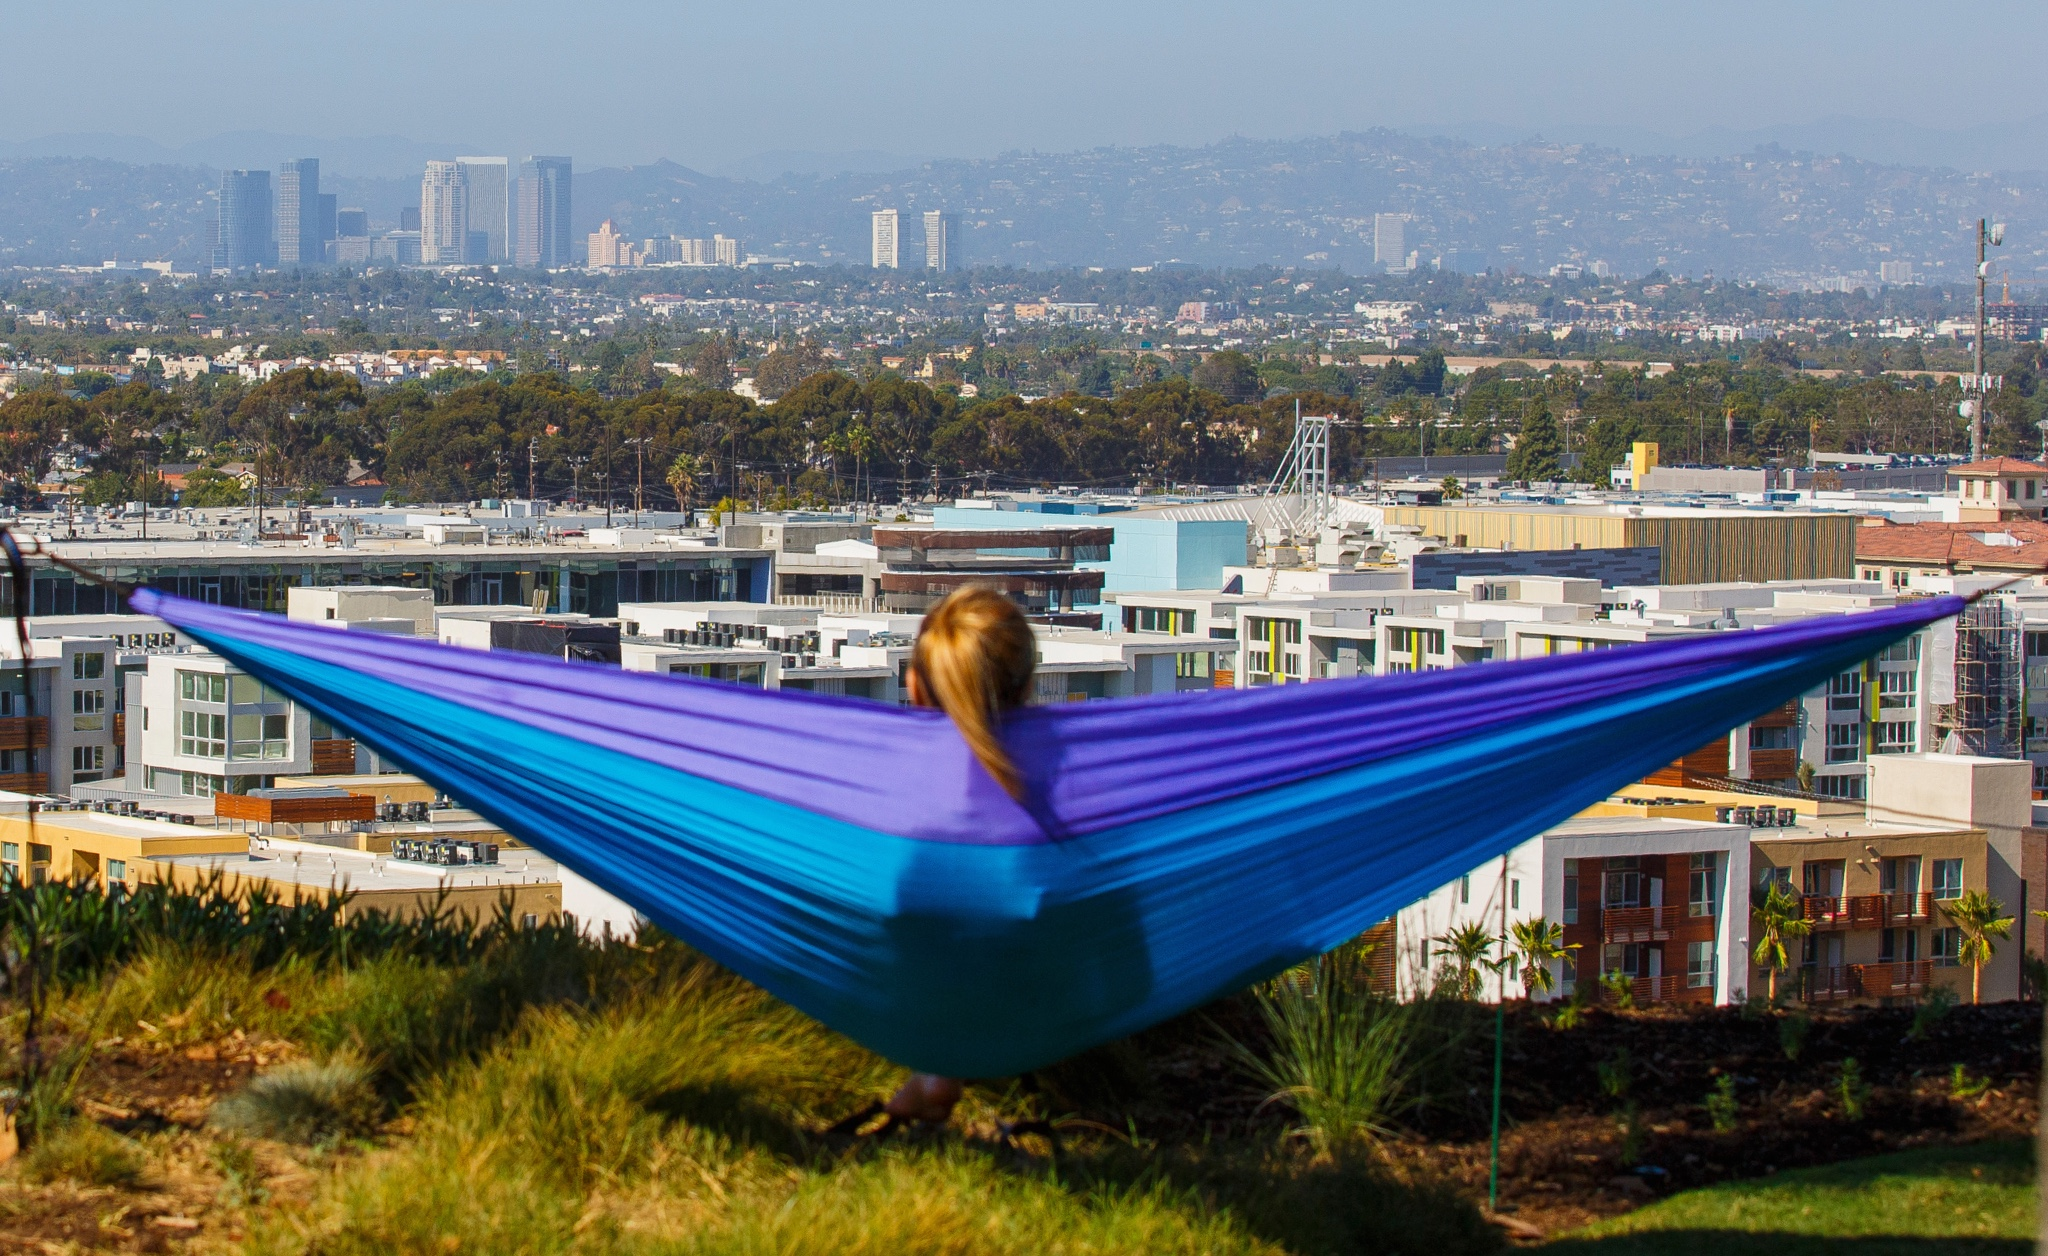 LMU student in a hammock look out over the bluff.